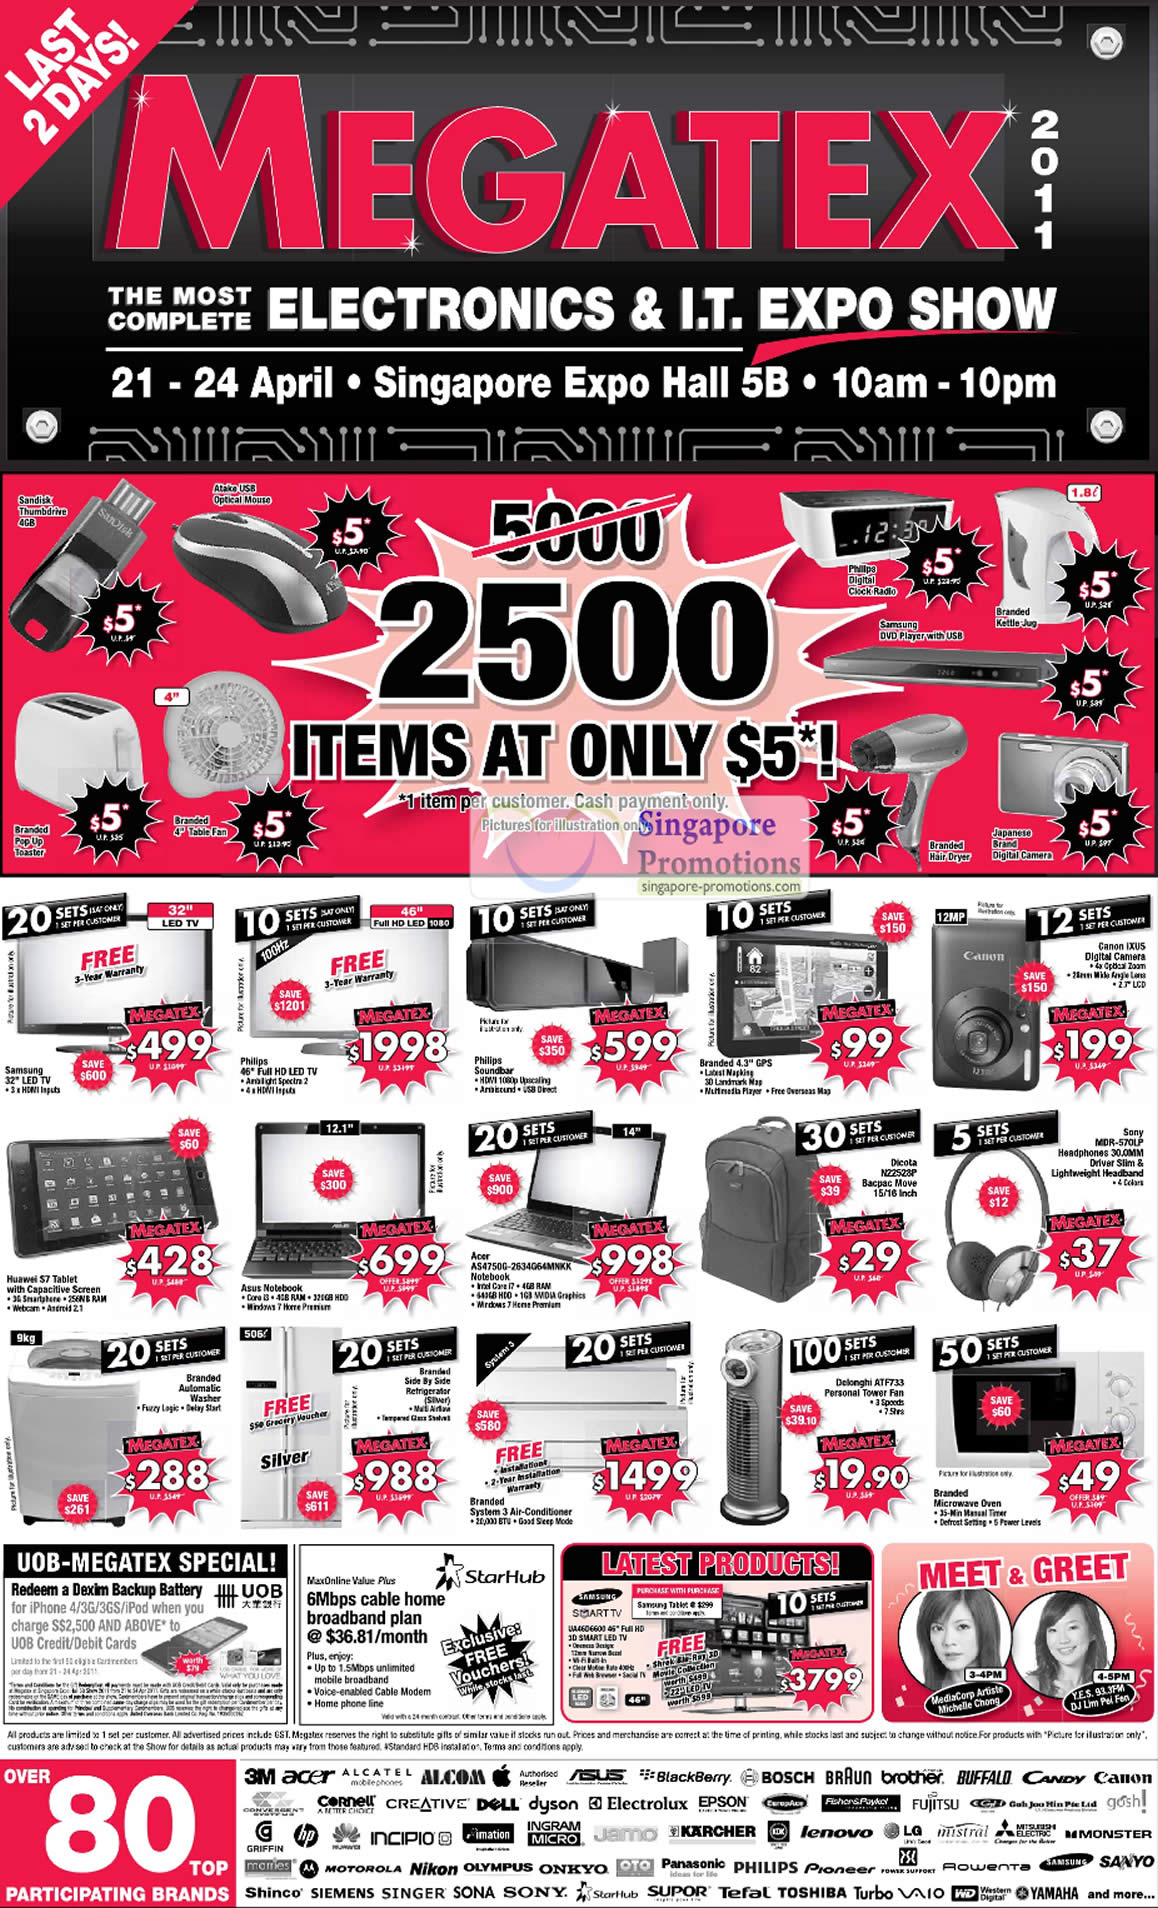 23 Apr, 2500 Items Five Dollar Limited Deals, Huawei S7, Dicota N22528P, Sony MDR-570LP, Delonghi ATF733, GPS, LED TV